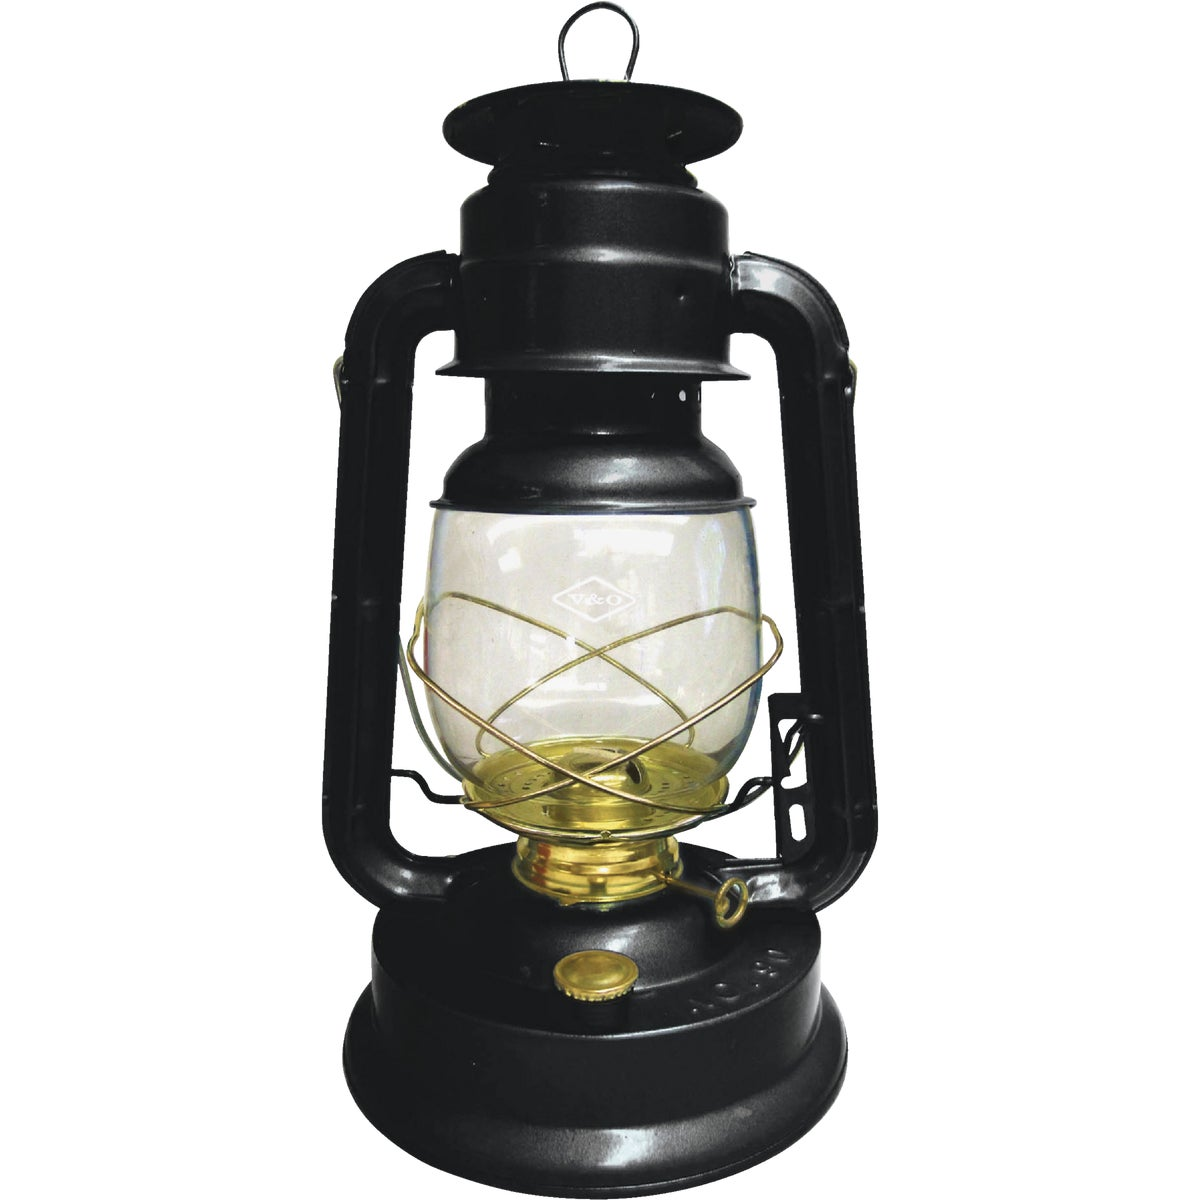 BLACK V&O #90 LANTERN - L90009 by 21st Century Inc